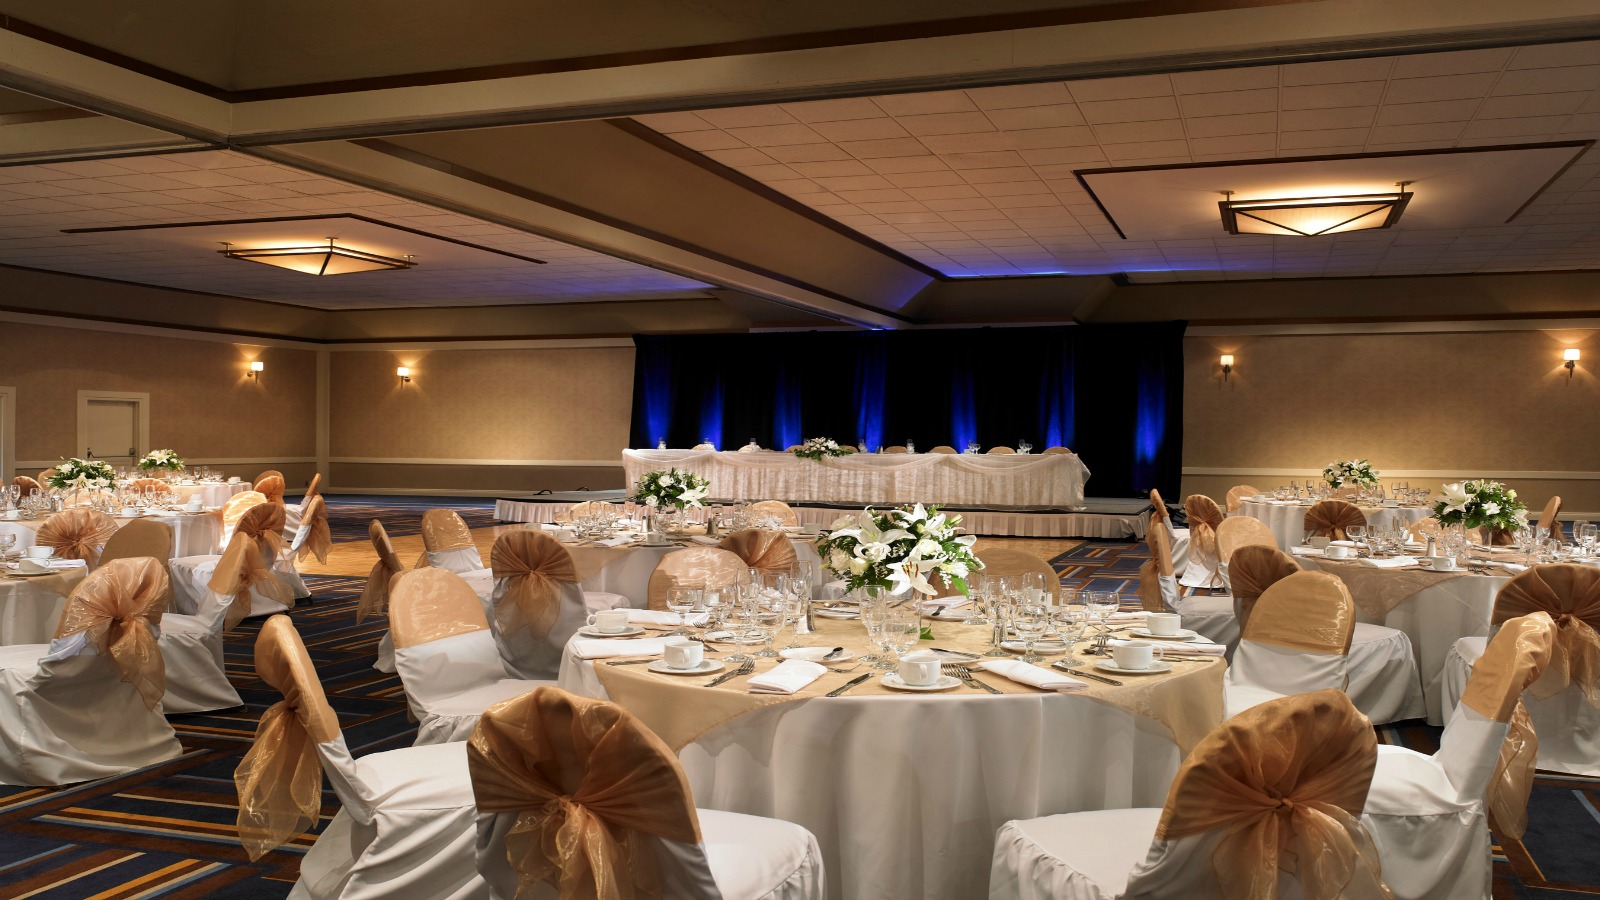 Los Angeles Wedding - Ballroom